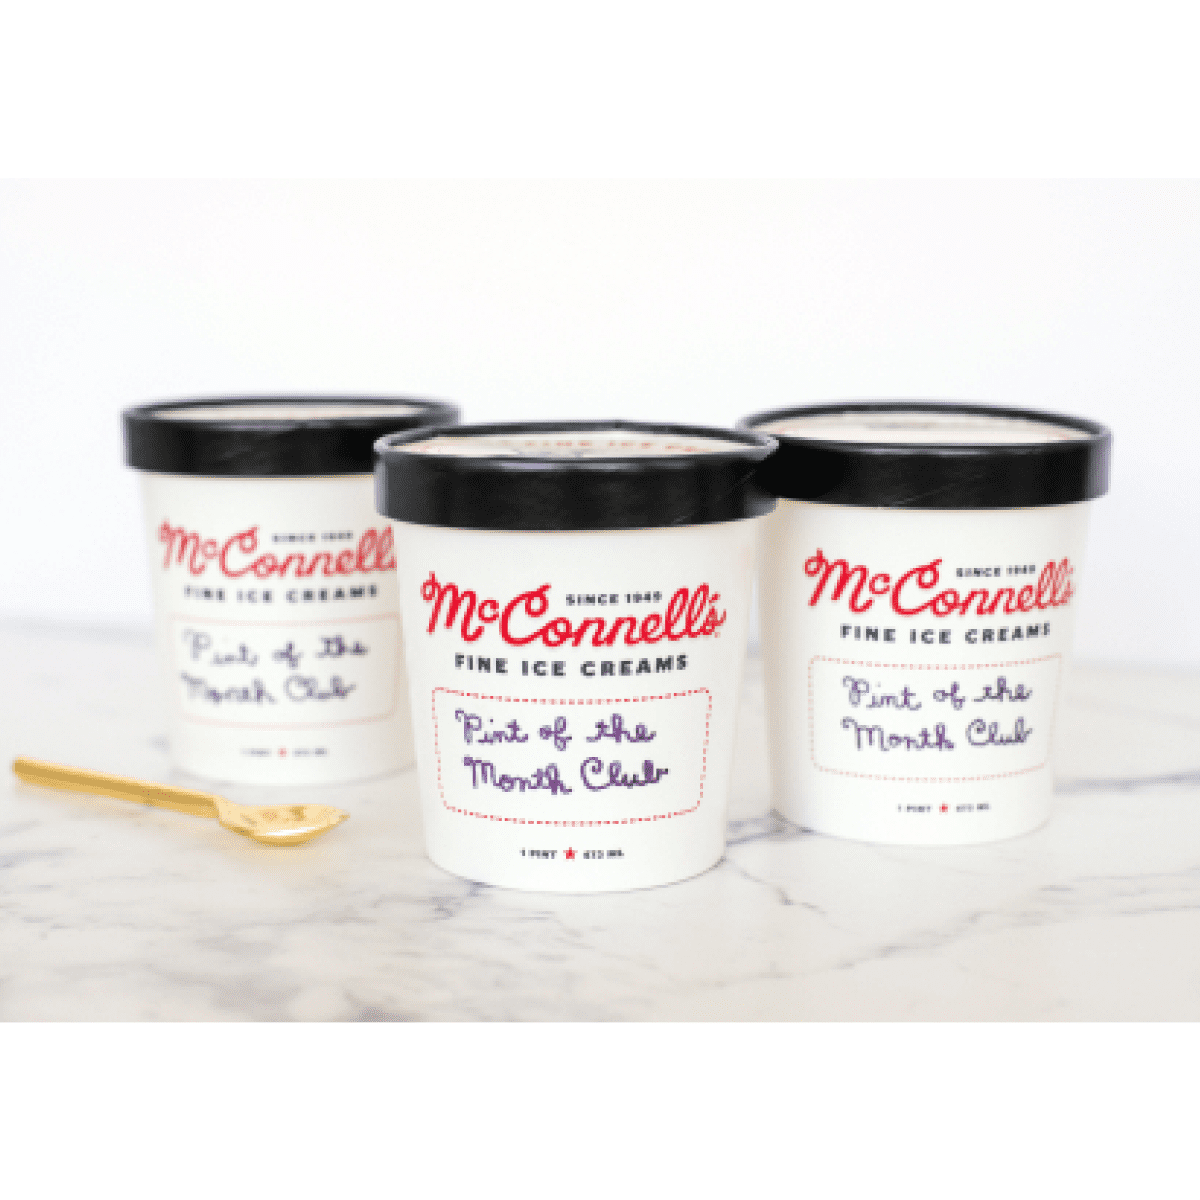 McConnell's Ice Cream of the Month Club